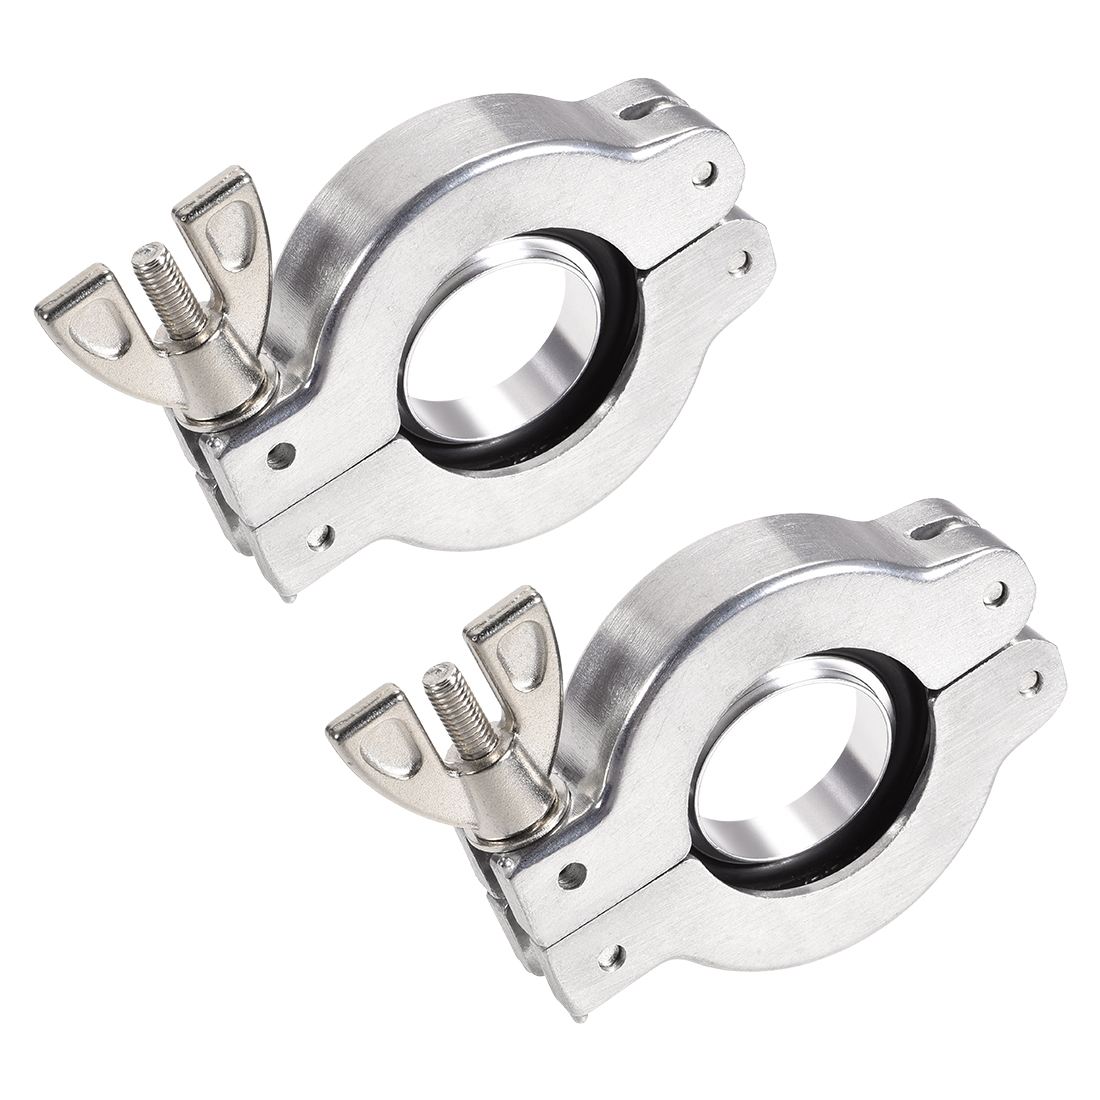 2 Pcs Sanitary -Clamp 53mm x 31mm KF25 Clamp Wing Nut w Center Ring